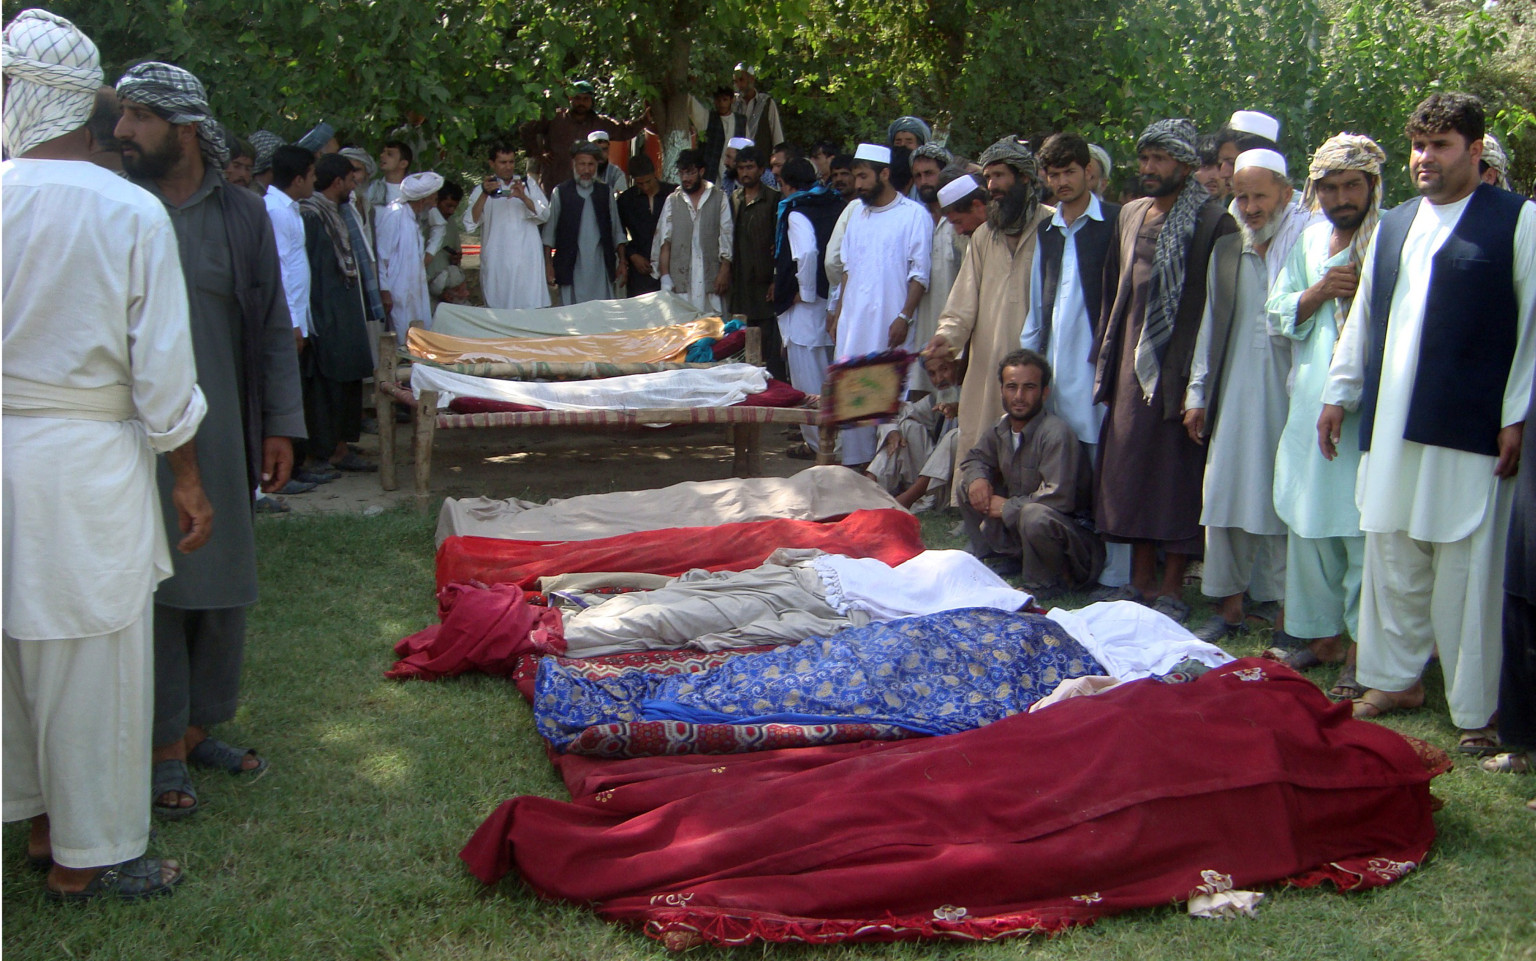 Afghan mourners gather beside bodies of civilians ahead of a funeral ceremony in Kunduz province on September 2, 2012. A pro-government Afghan militia commander and his men have shot dead at least eight civilians in revenge, after mistakenly blaming villagers for a Taliban attack, officials said. AFP PHOTO/ Gul Rahim        (Photo credit should read GUL RAHIM/AFP/GettyImages)